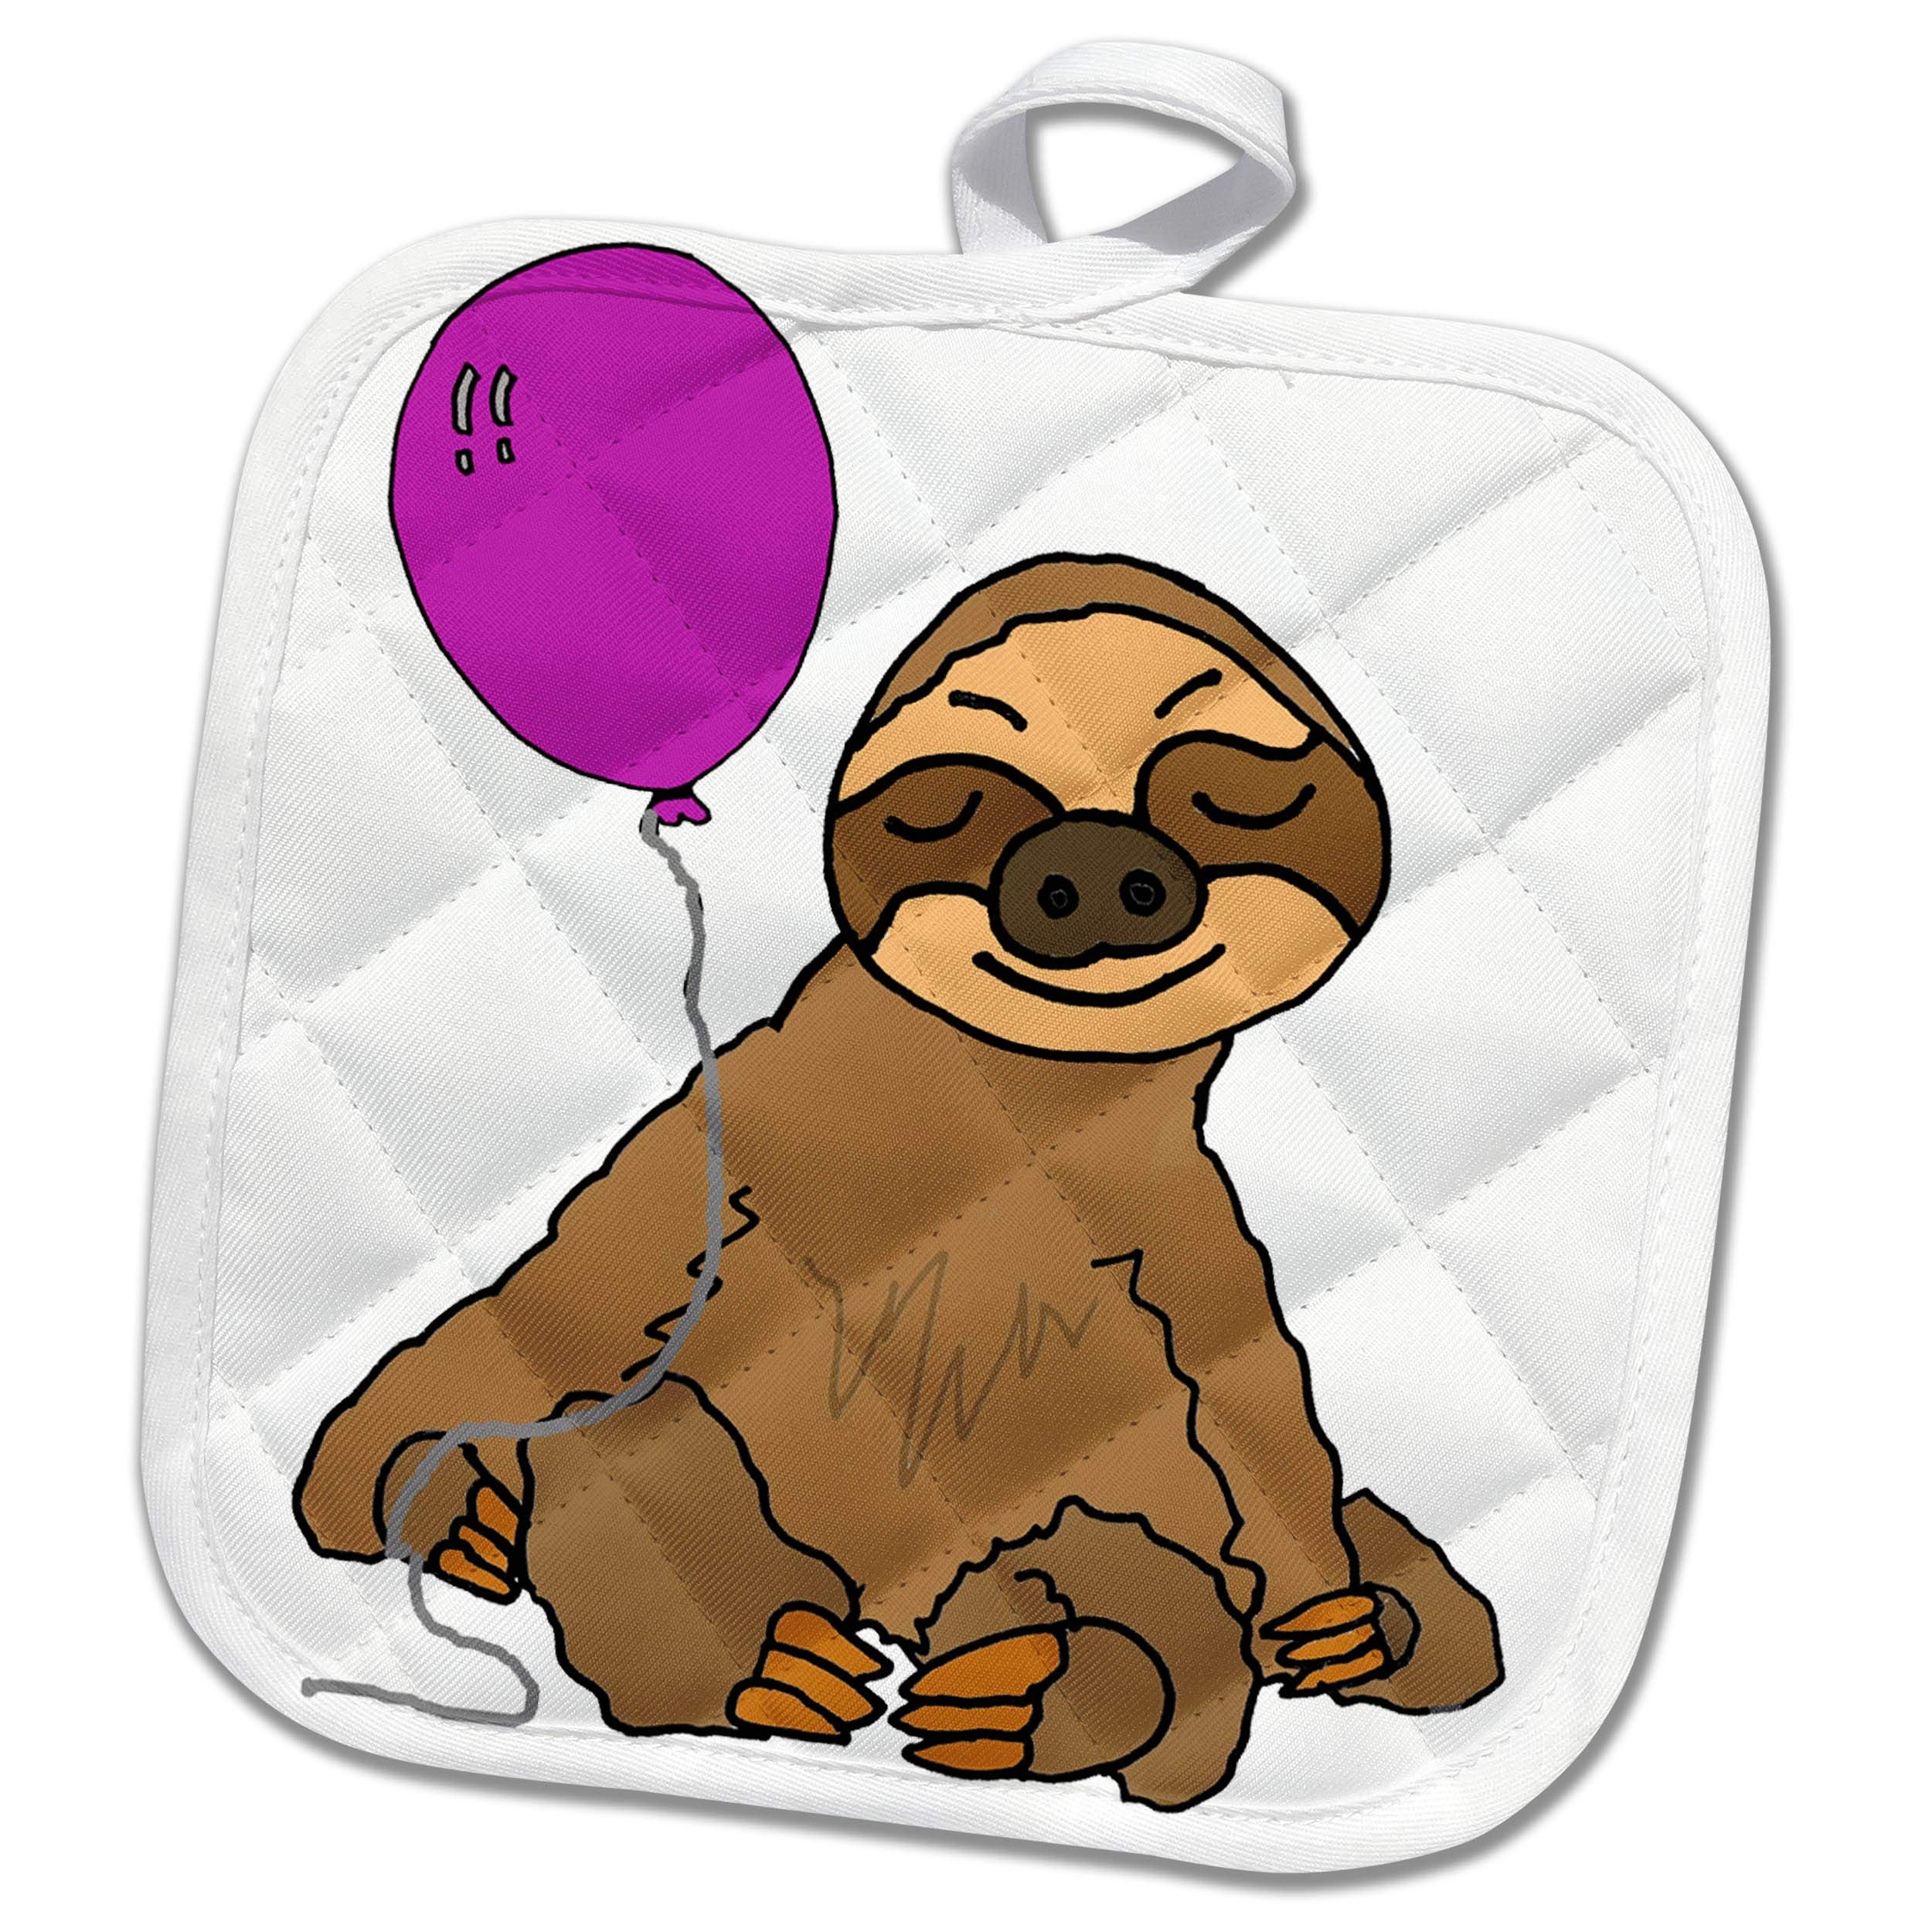 3dRose All Smiles Art Animals - Funny Sloth with Purple Balloon Cartoon - 8x8 Potholder (phl_288116_1)